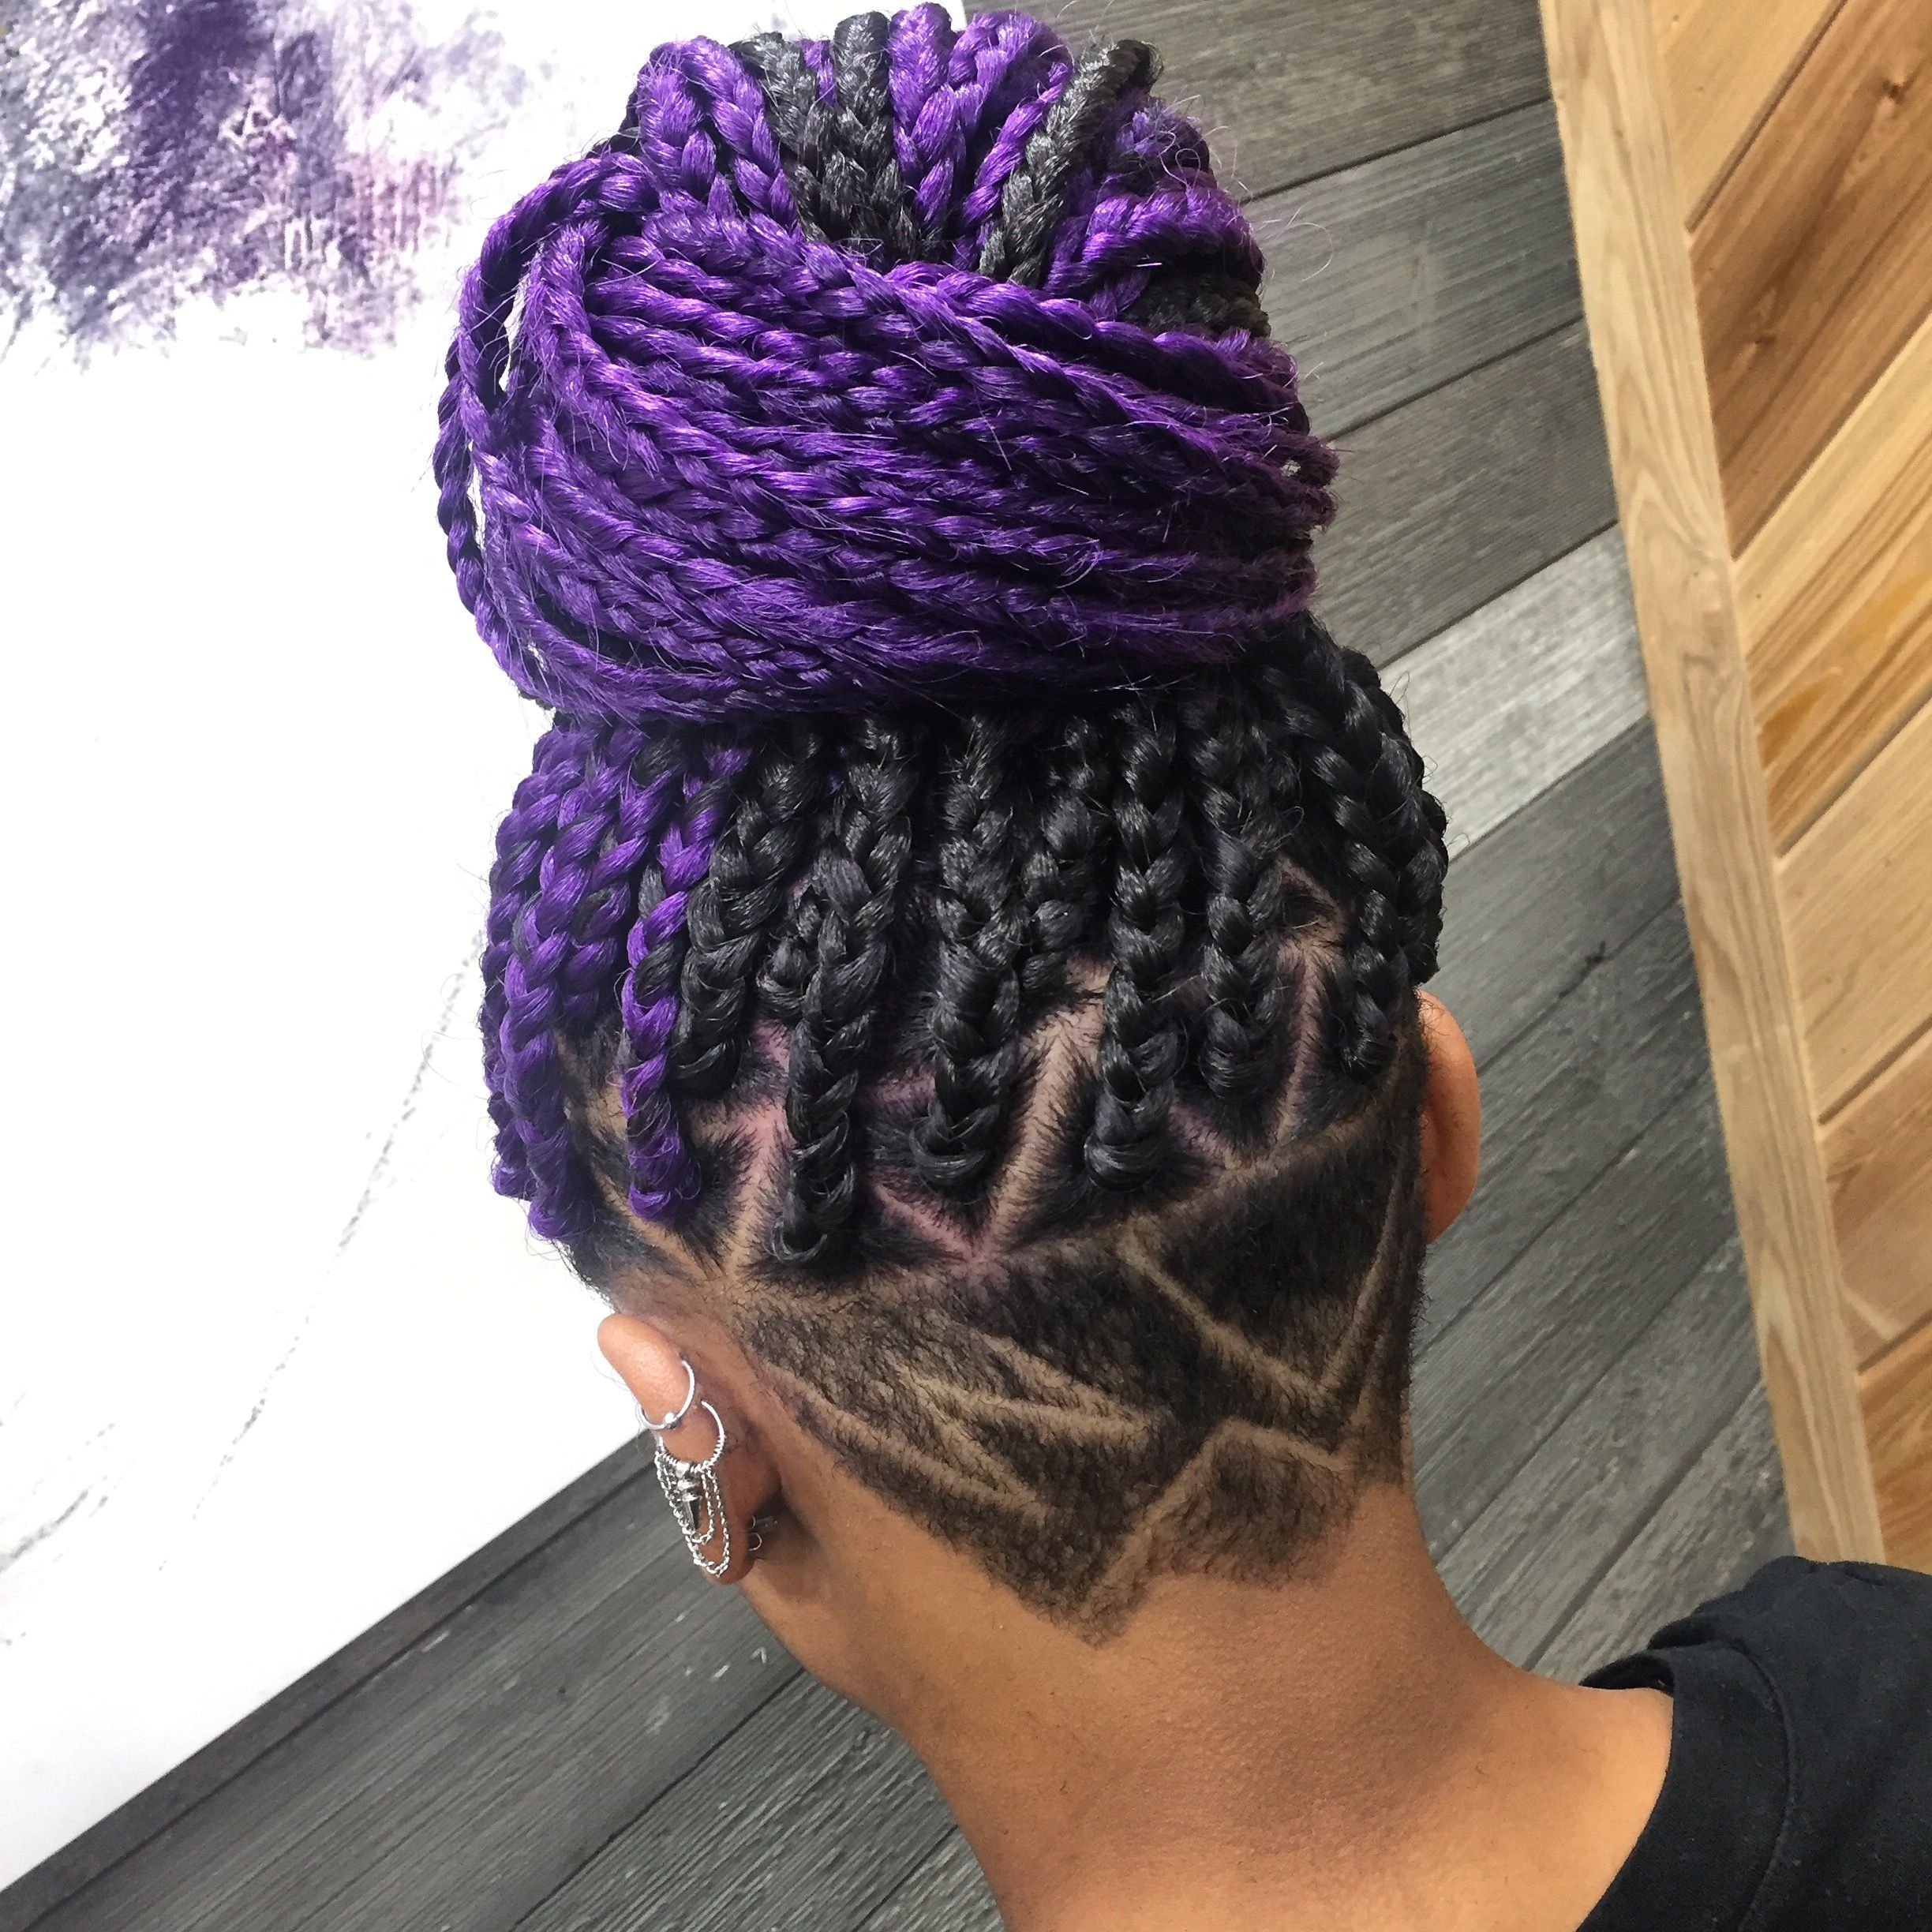 Purple Box Braids With Undercut Design Follow My Ig Neworleansstylistrella Purple Box Braids Box Braids Styling Braids With Shaved Sides